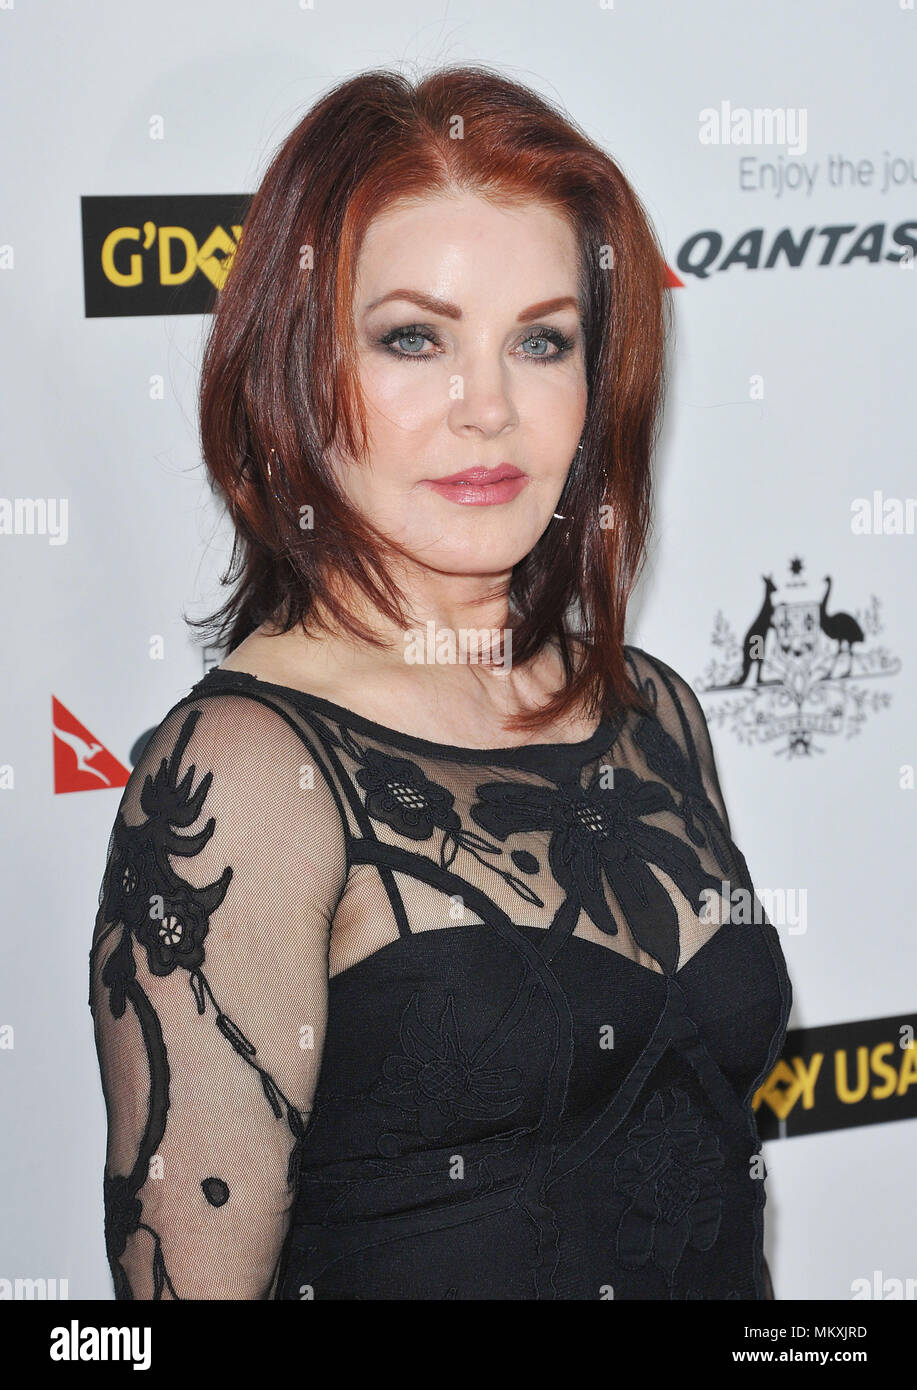 Priscilla Presley  at  G Day USA Black Tie Gala at The Kodak Theatre In Los Angeles.Priscilla Presley _32 Red Carpet Event, Vertical, USA, Film Industry, Celebrities,  Photography, Bestof, Arts Culture and Entertainment, Topix Celebrities fashion /  Vertical, Best of, Event in Hollywood Life - California,  Red Carpet and backstage, USA, Film Industry, Celebrities,  movie celebrities, TV celebrities, Music celebrities, Photography, Bestof, Arts Culture and Entertainment,  Topix, headshot, vertical, one person,, from the year , 2012, inquiry tsuni@Gamma-USA.com - Stock Image